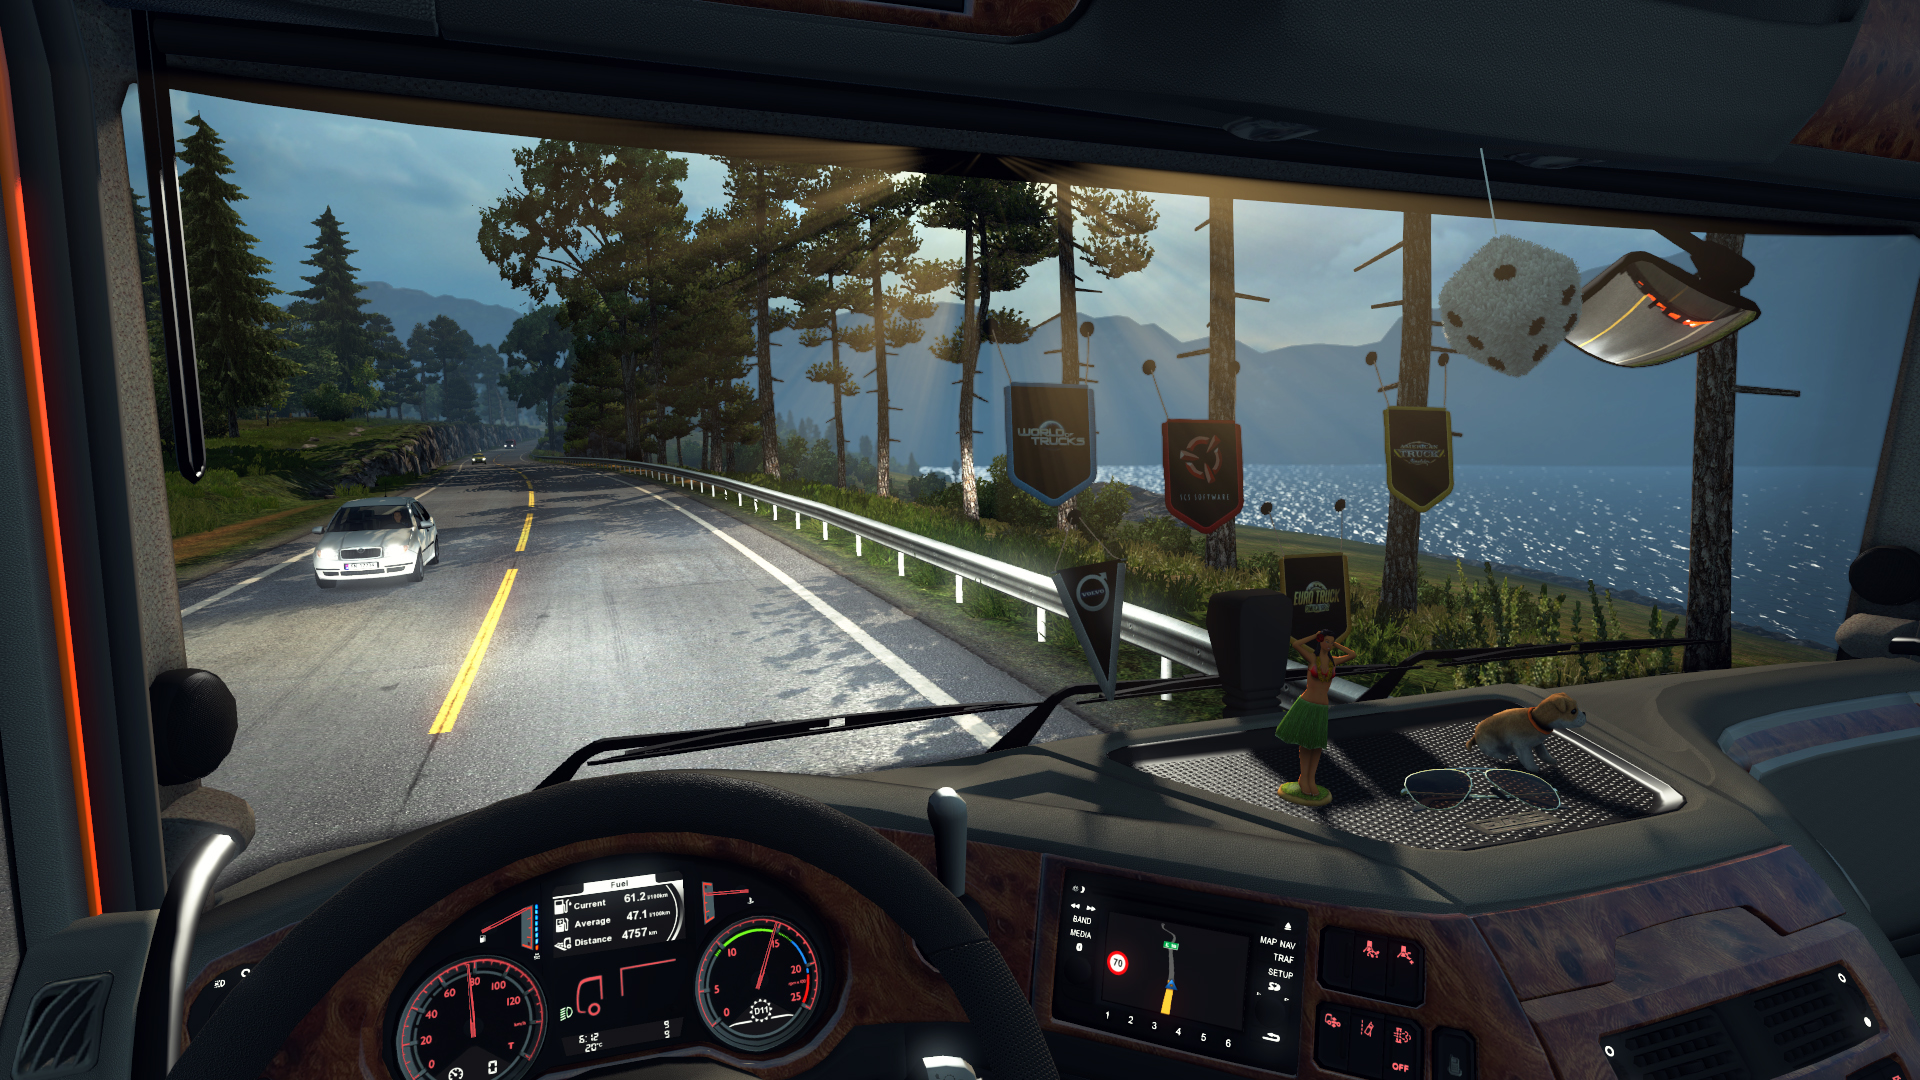 Euro truck simulator 2 cabin accessories on steam